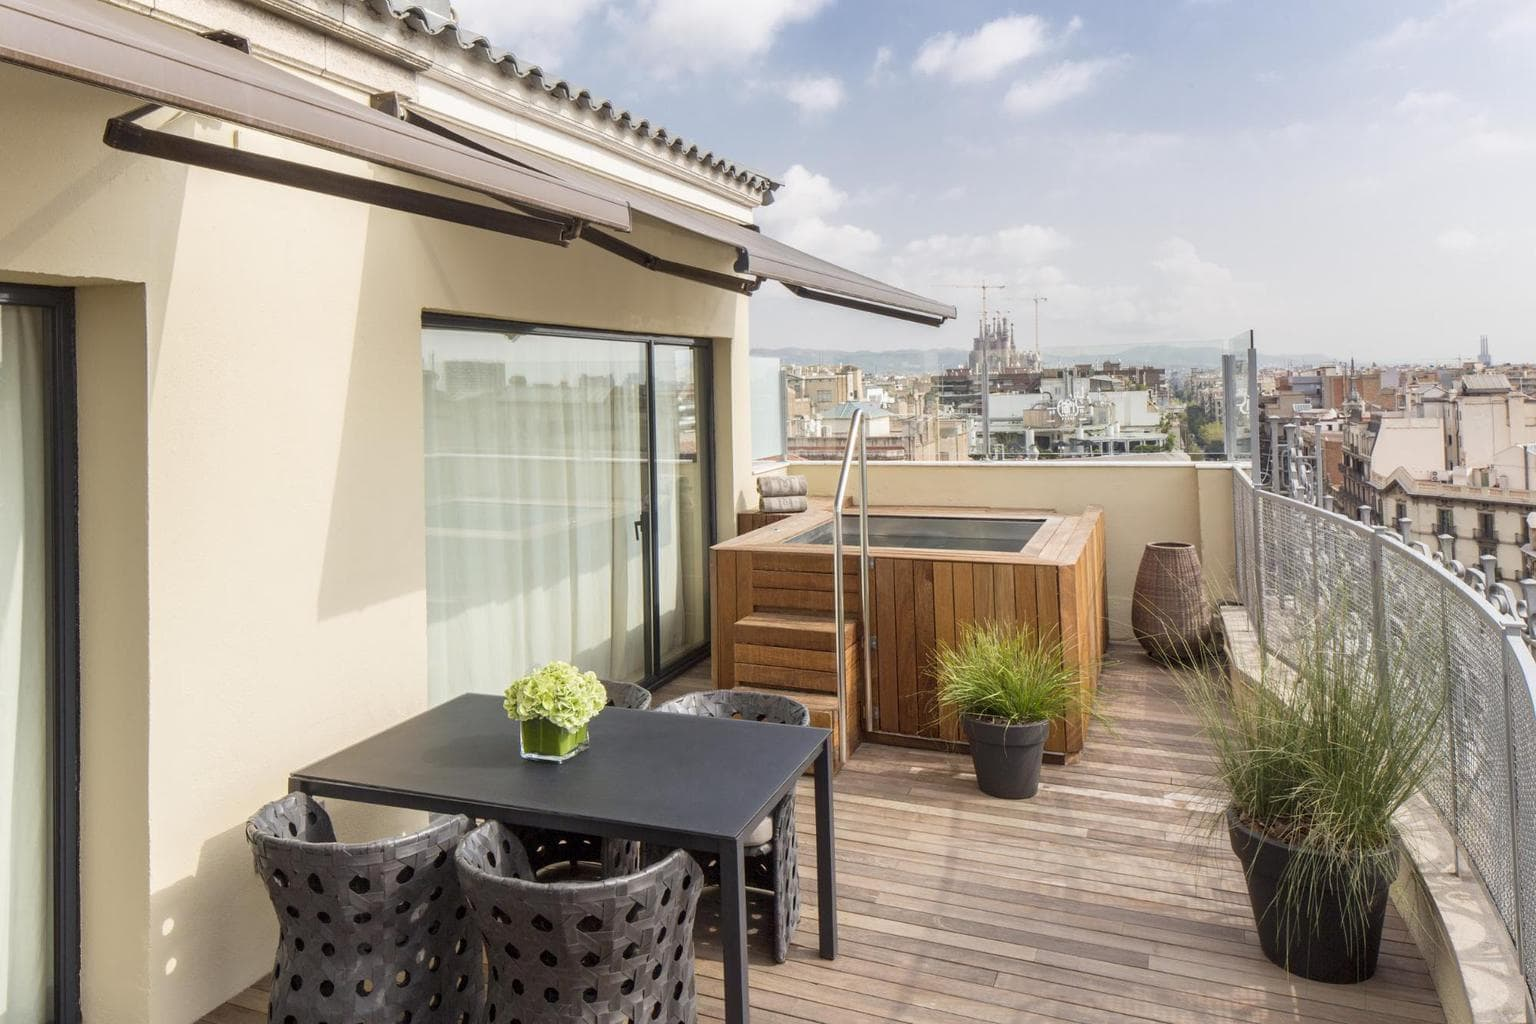 The Penthouse Suites views at Majestic Hotel & Spa Barcelona